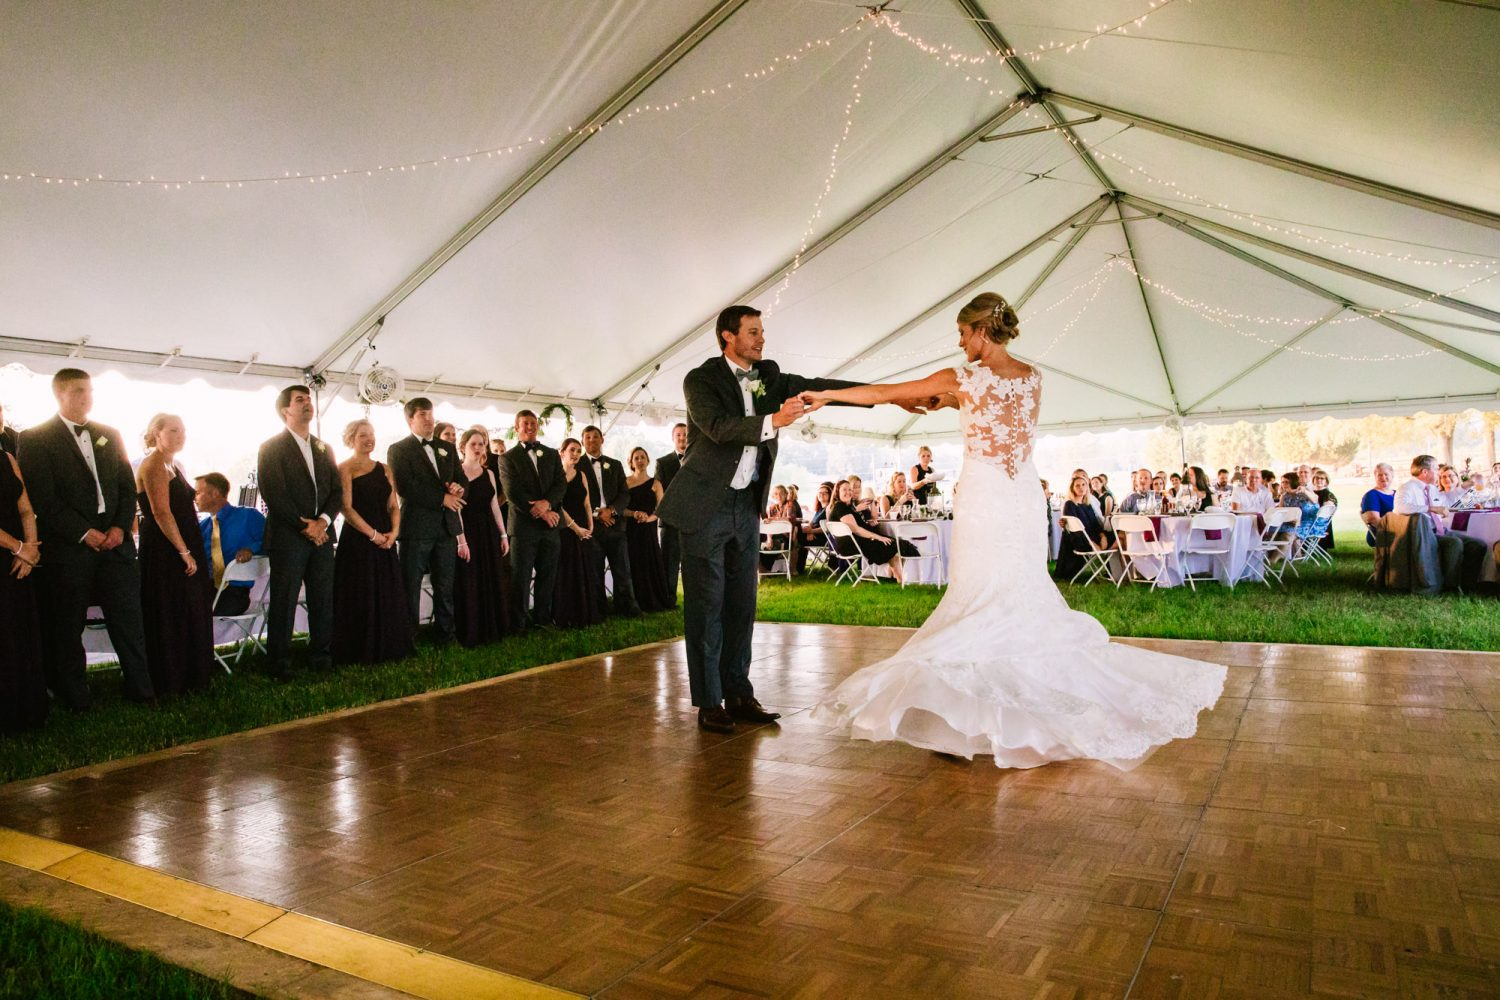 Waynesville, NC Wedding Photography | Bride and Groom First Dance Dress Swirling